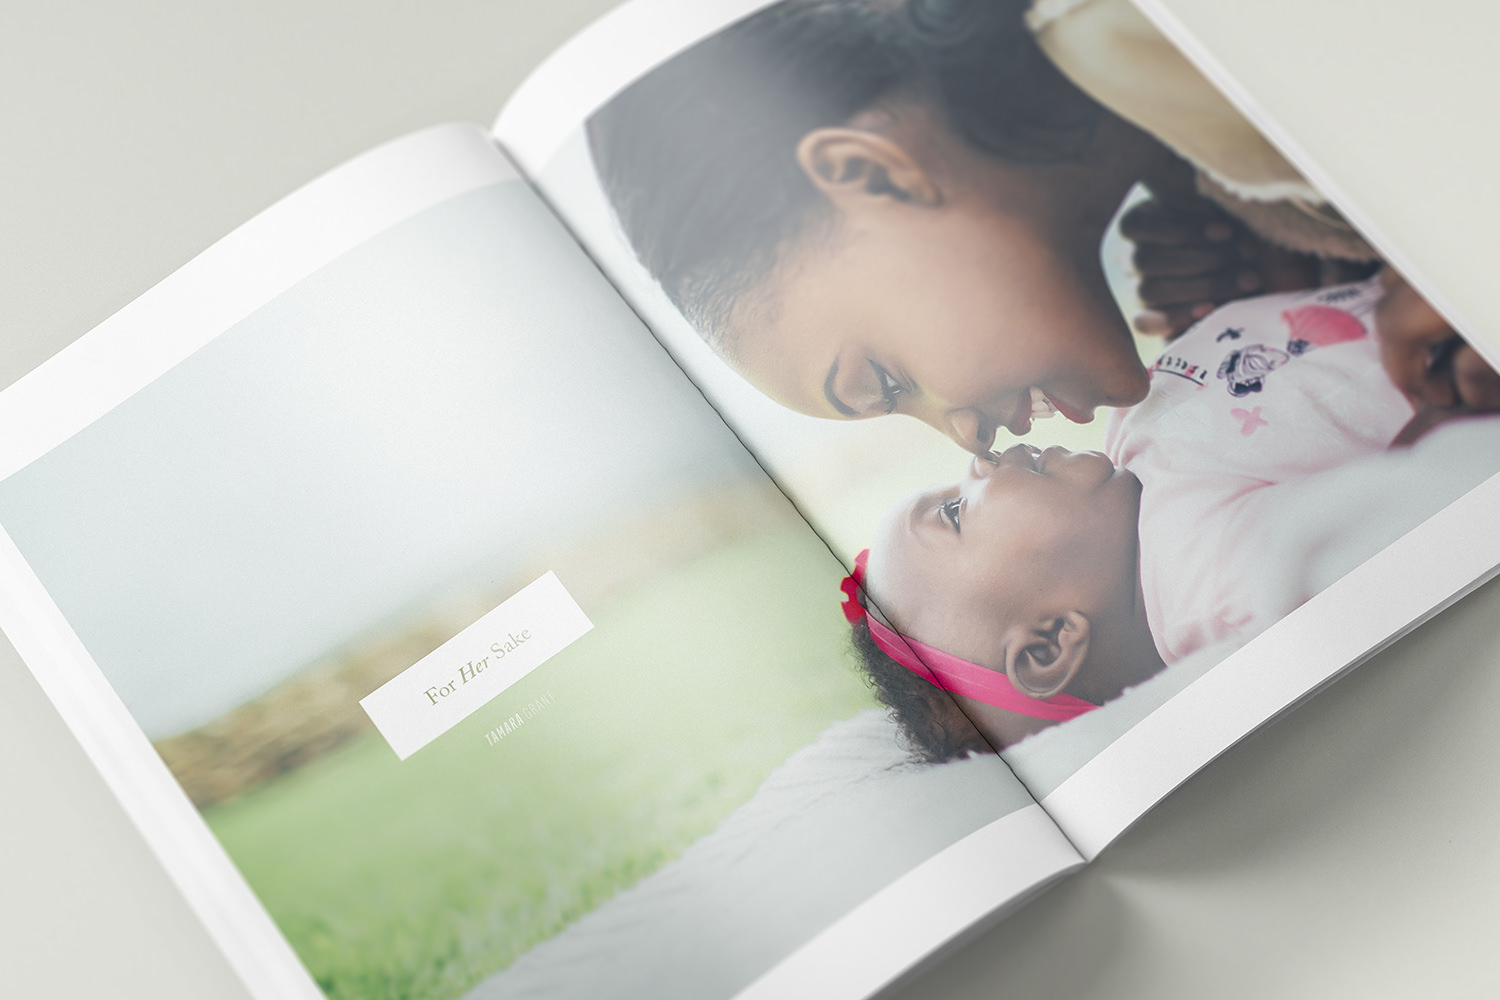 Presented in a magazine style, but with content guaranteed to bring tangible hope and encouragement as you read stories, poems and songs from former residents sharing testimony of their broken life made whole by their heavenly Father. -